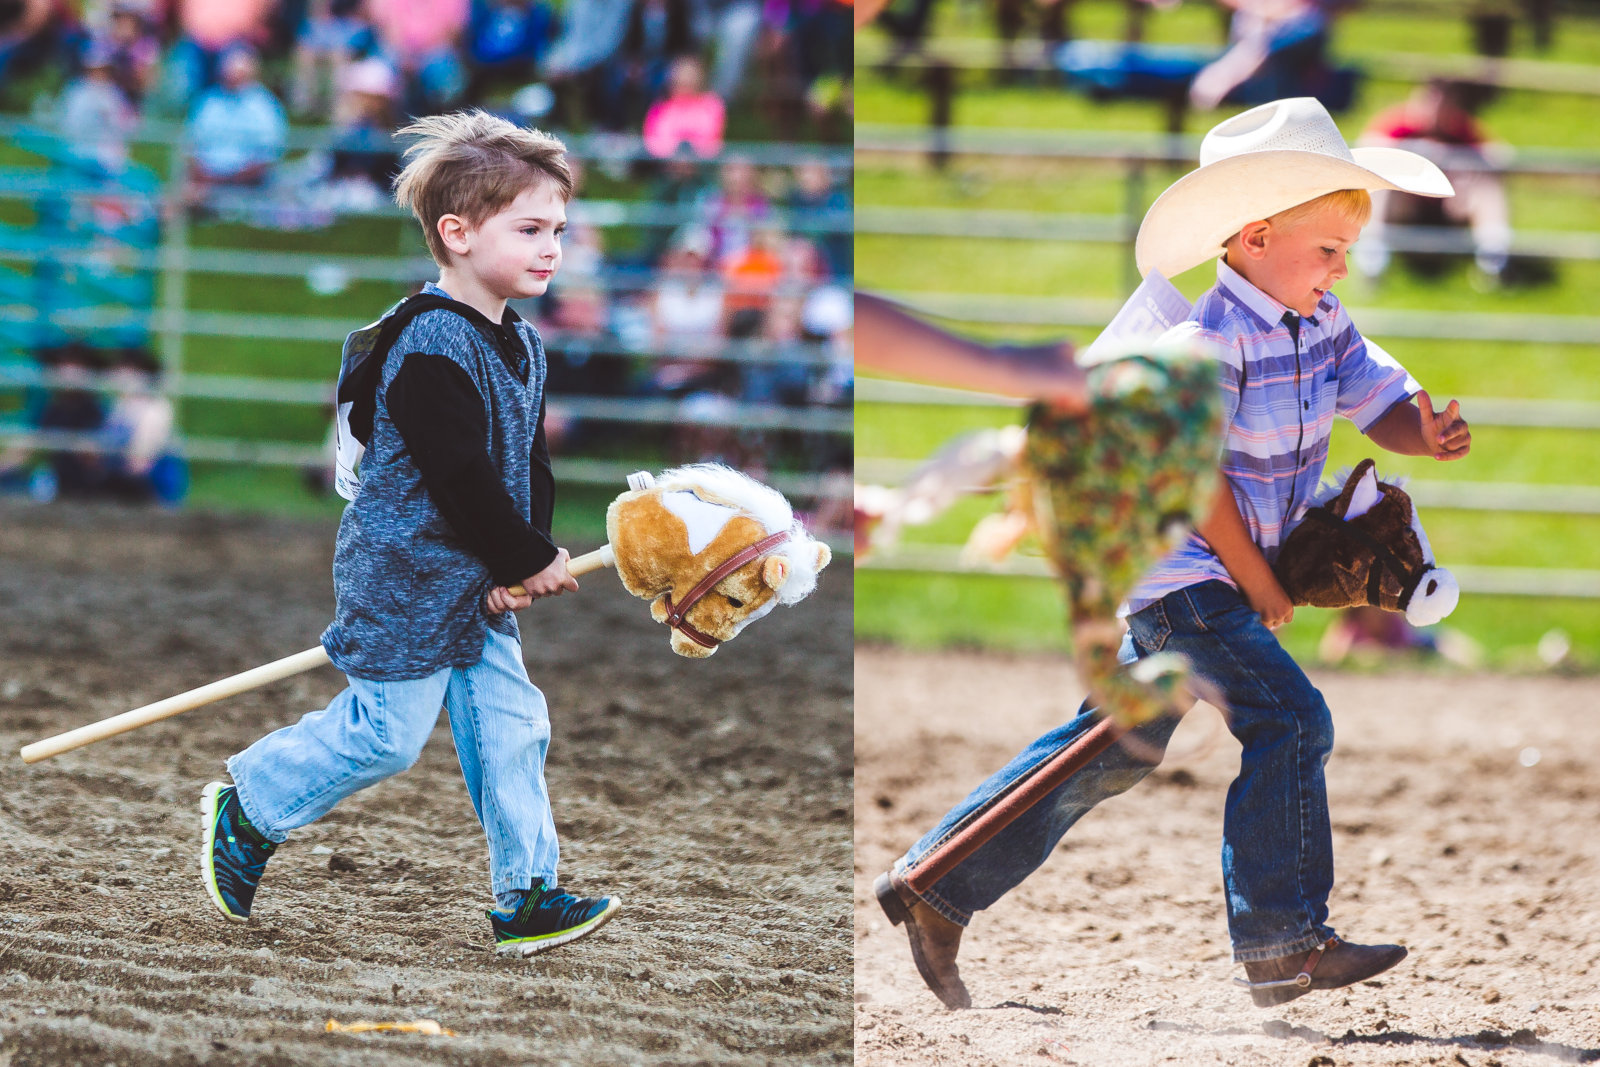 Collage of two stick-horse competitors at the Ellicottville Rodeo in July 2018